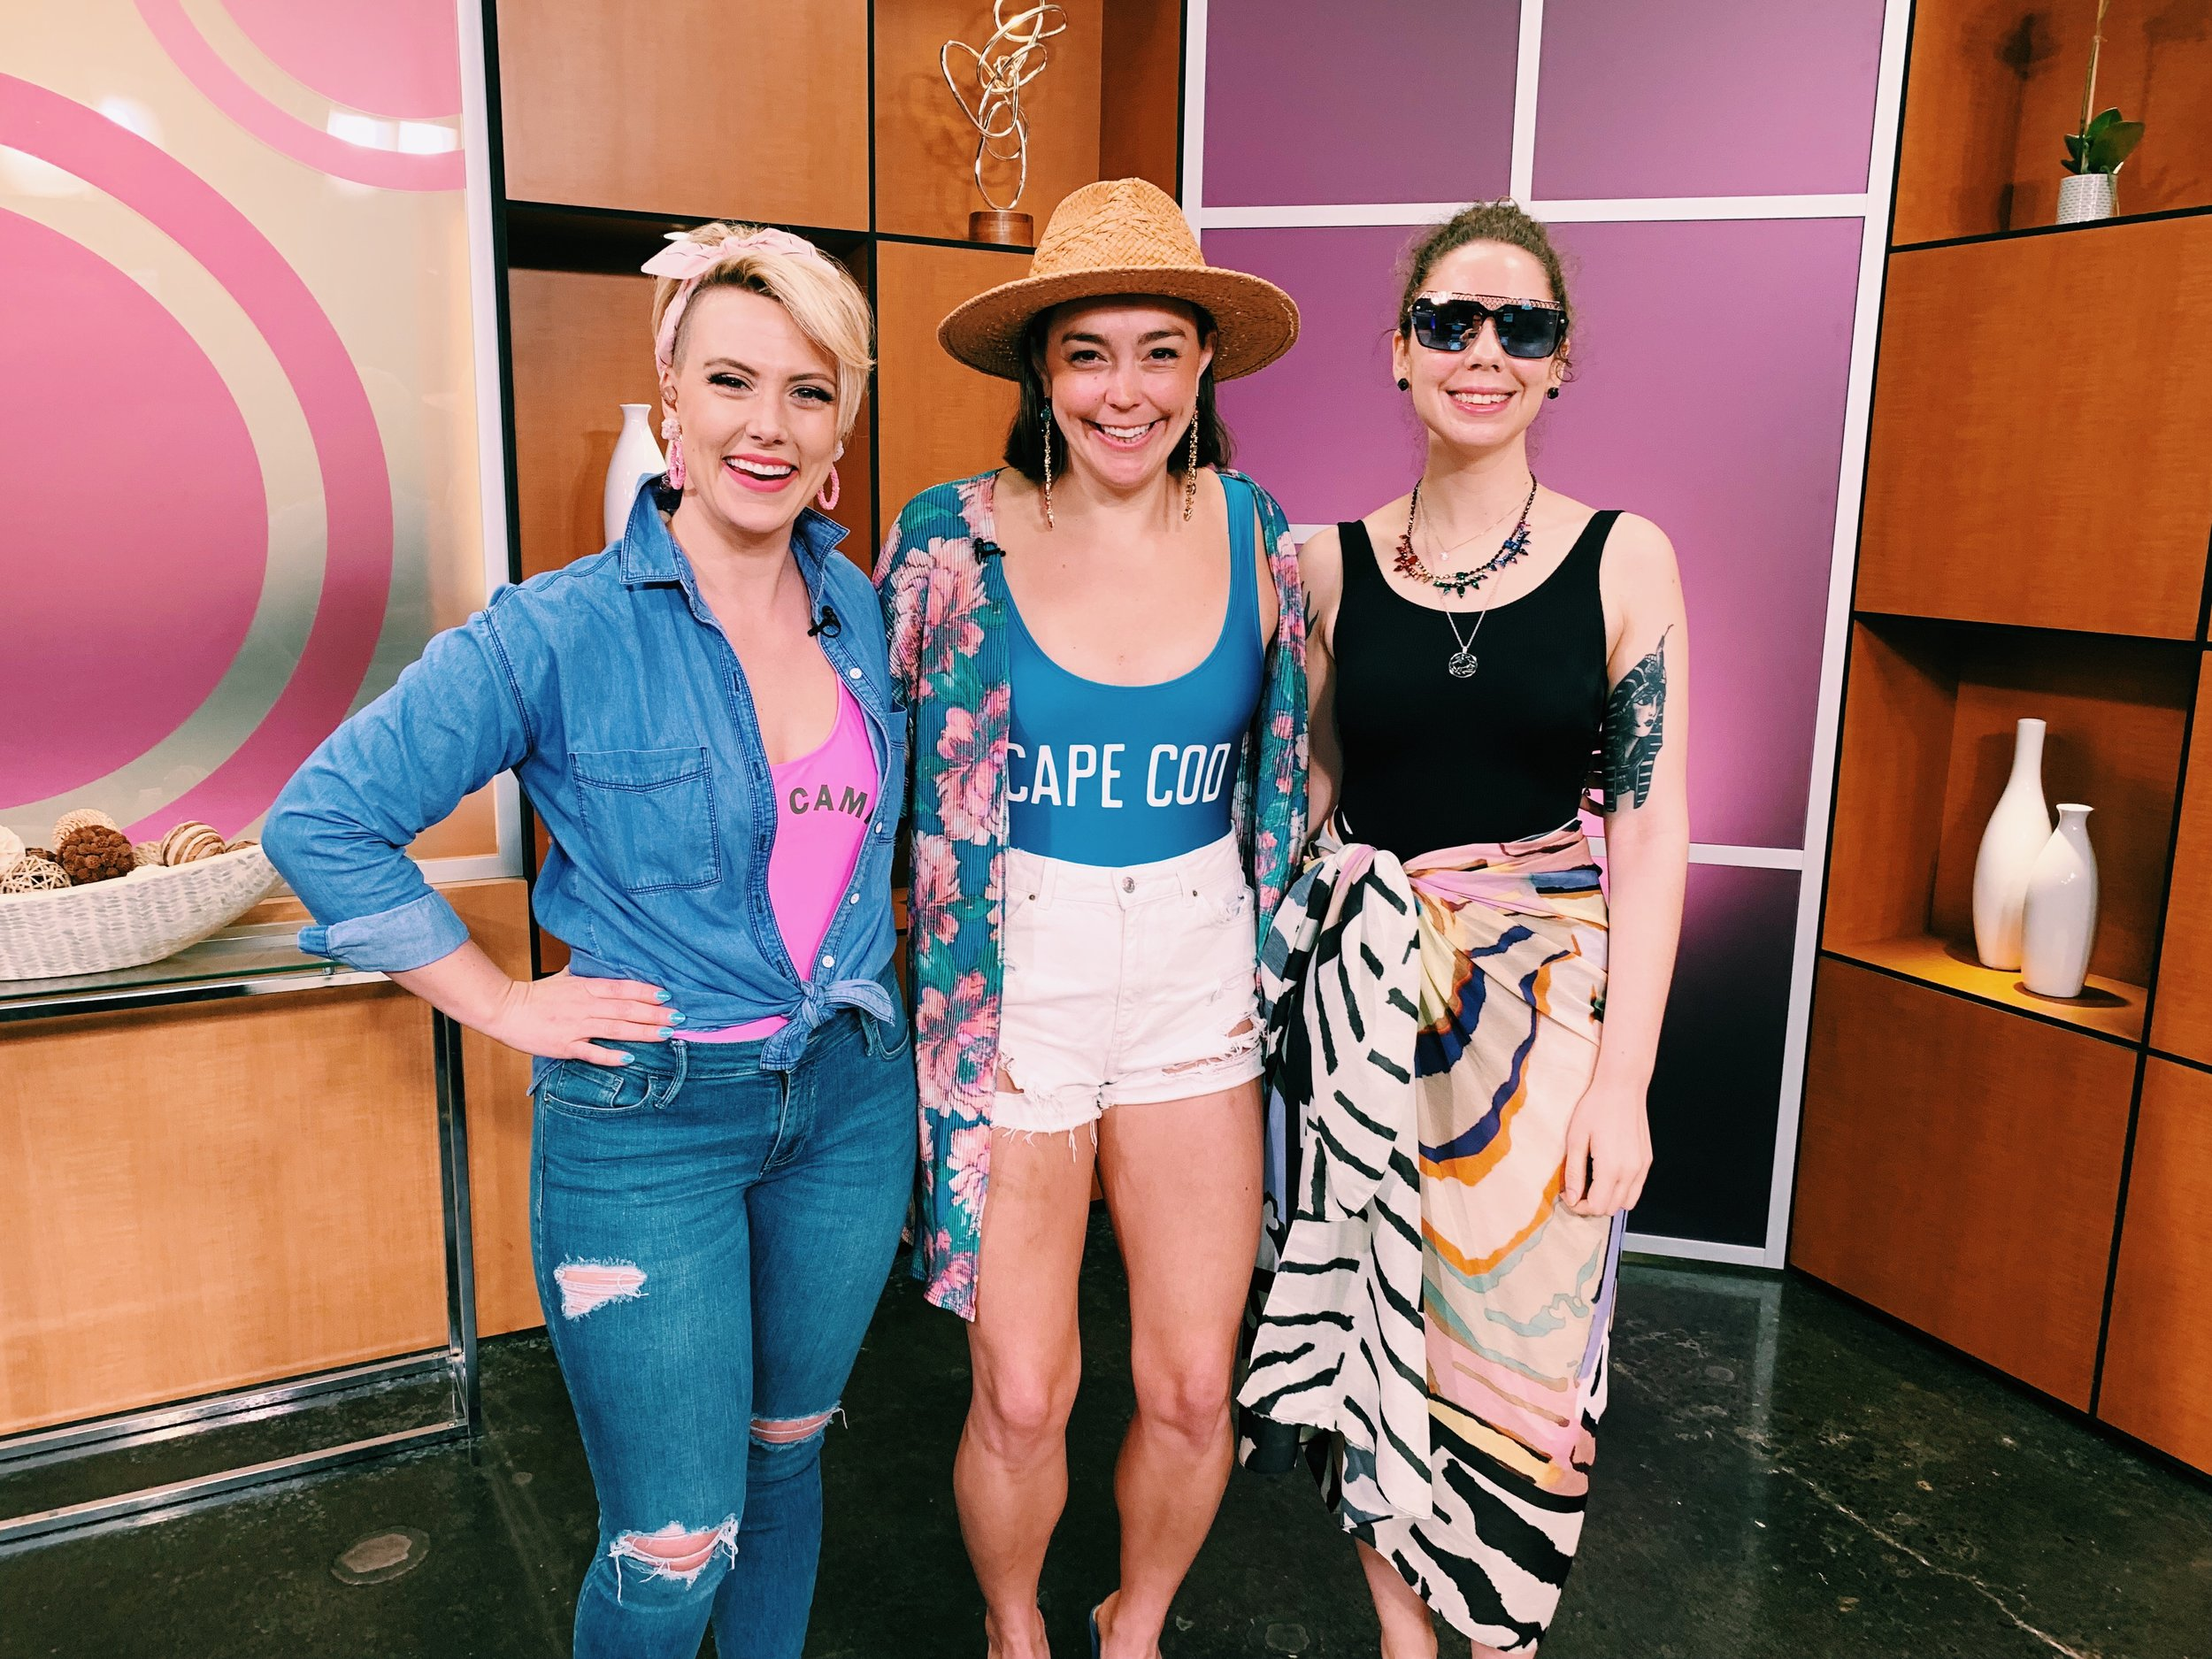 Raquel visited Studio 512 to teach you how to put together a poolside look you'll love this summer.